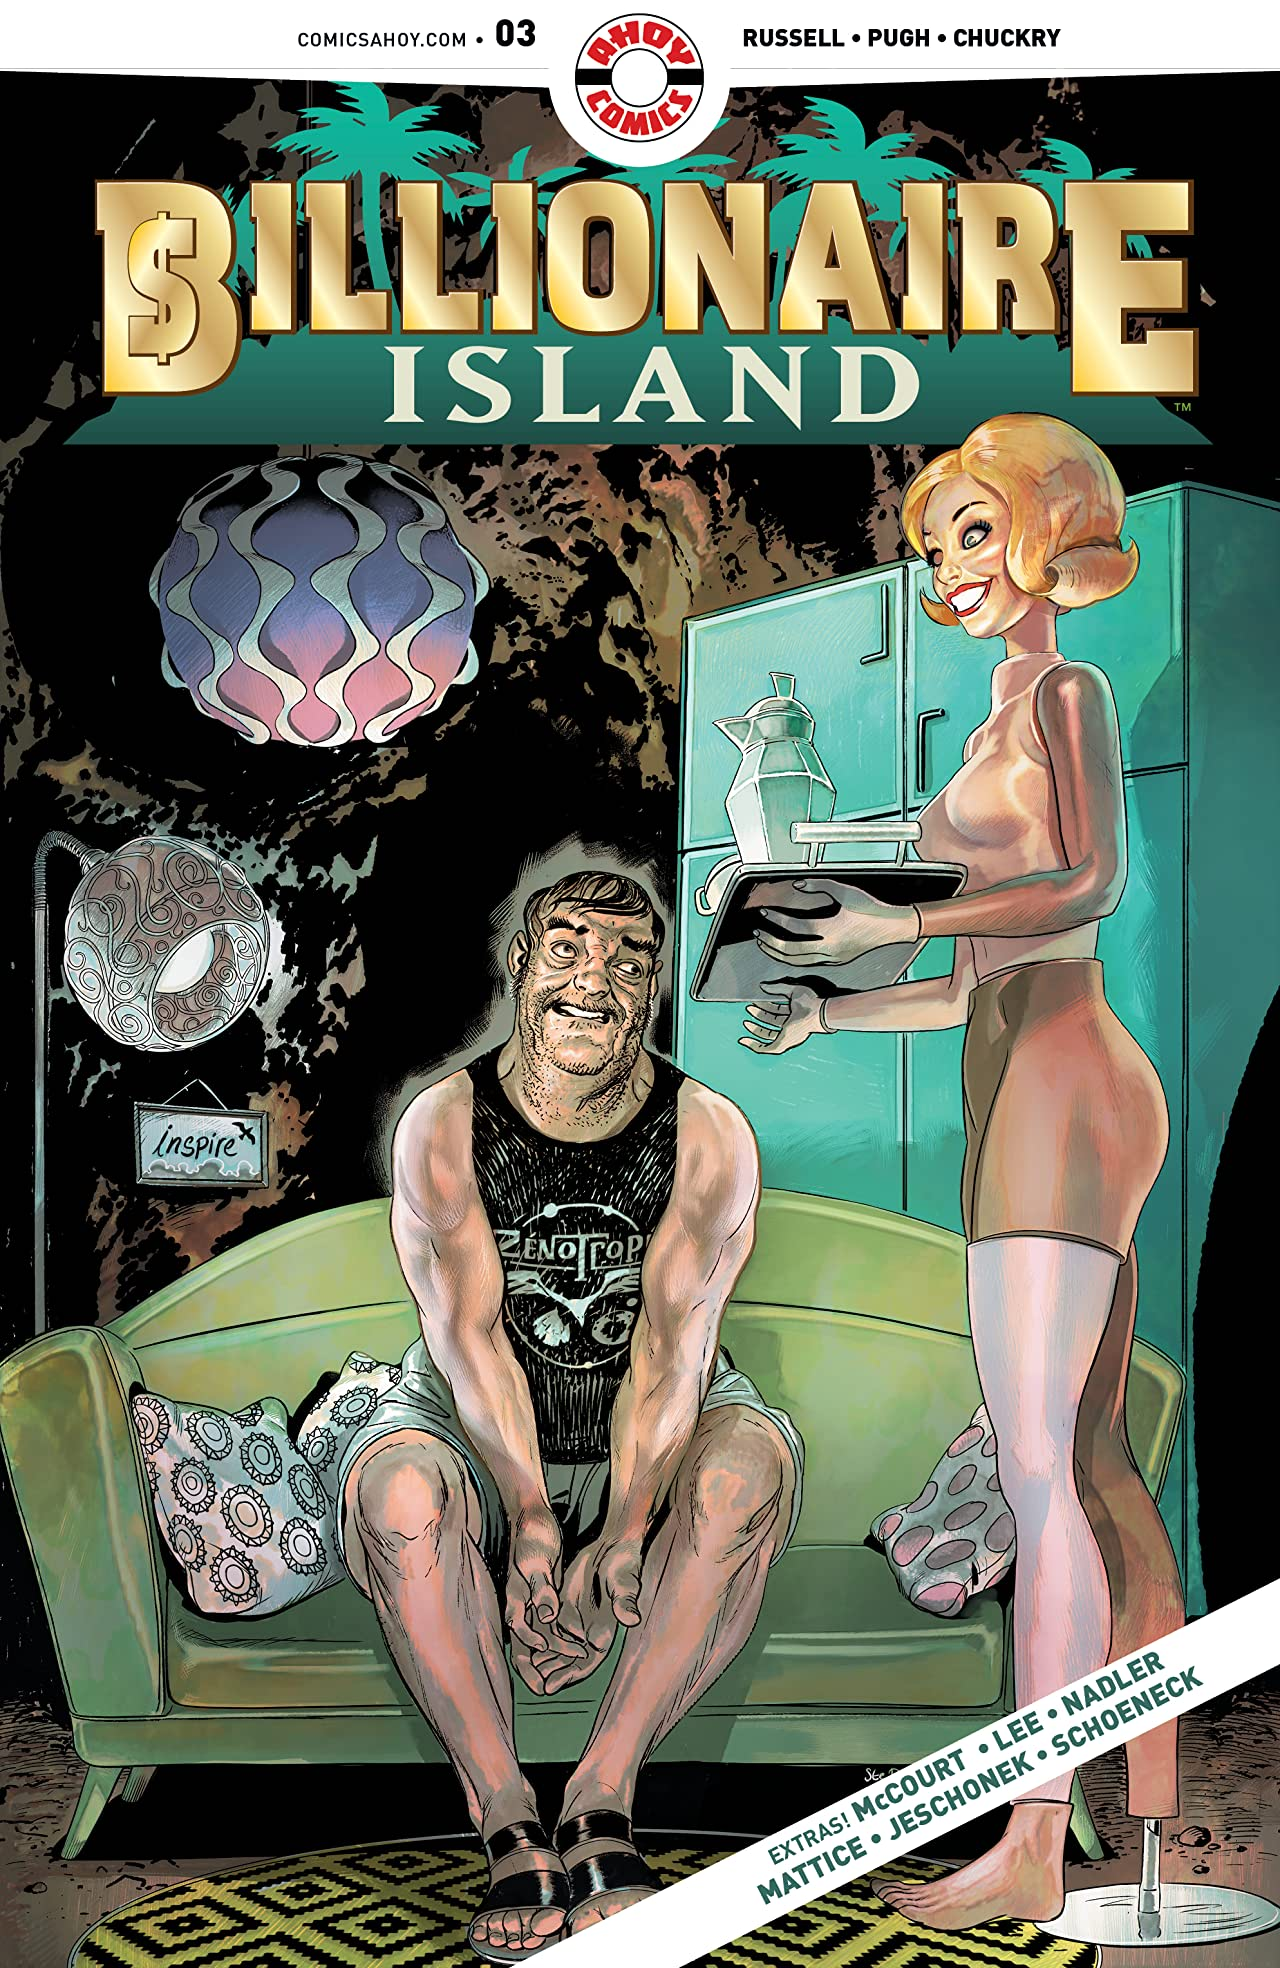 Billionaire Island No.3